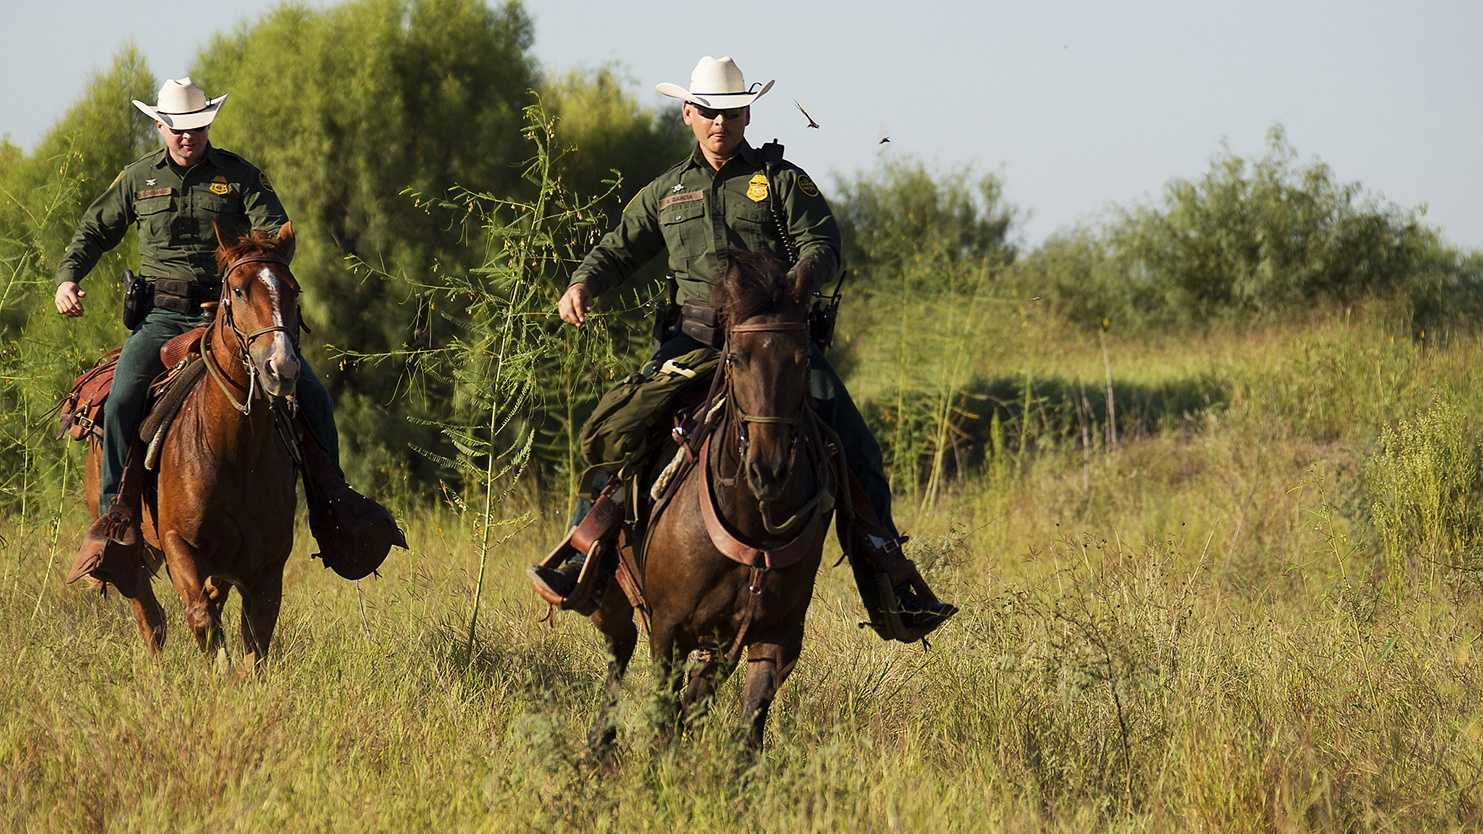 U.S. Border Patrol agents patrol the Mexico-US border on horseback in south Texas.